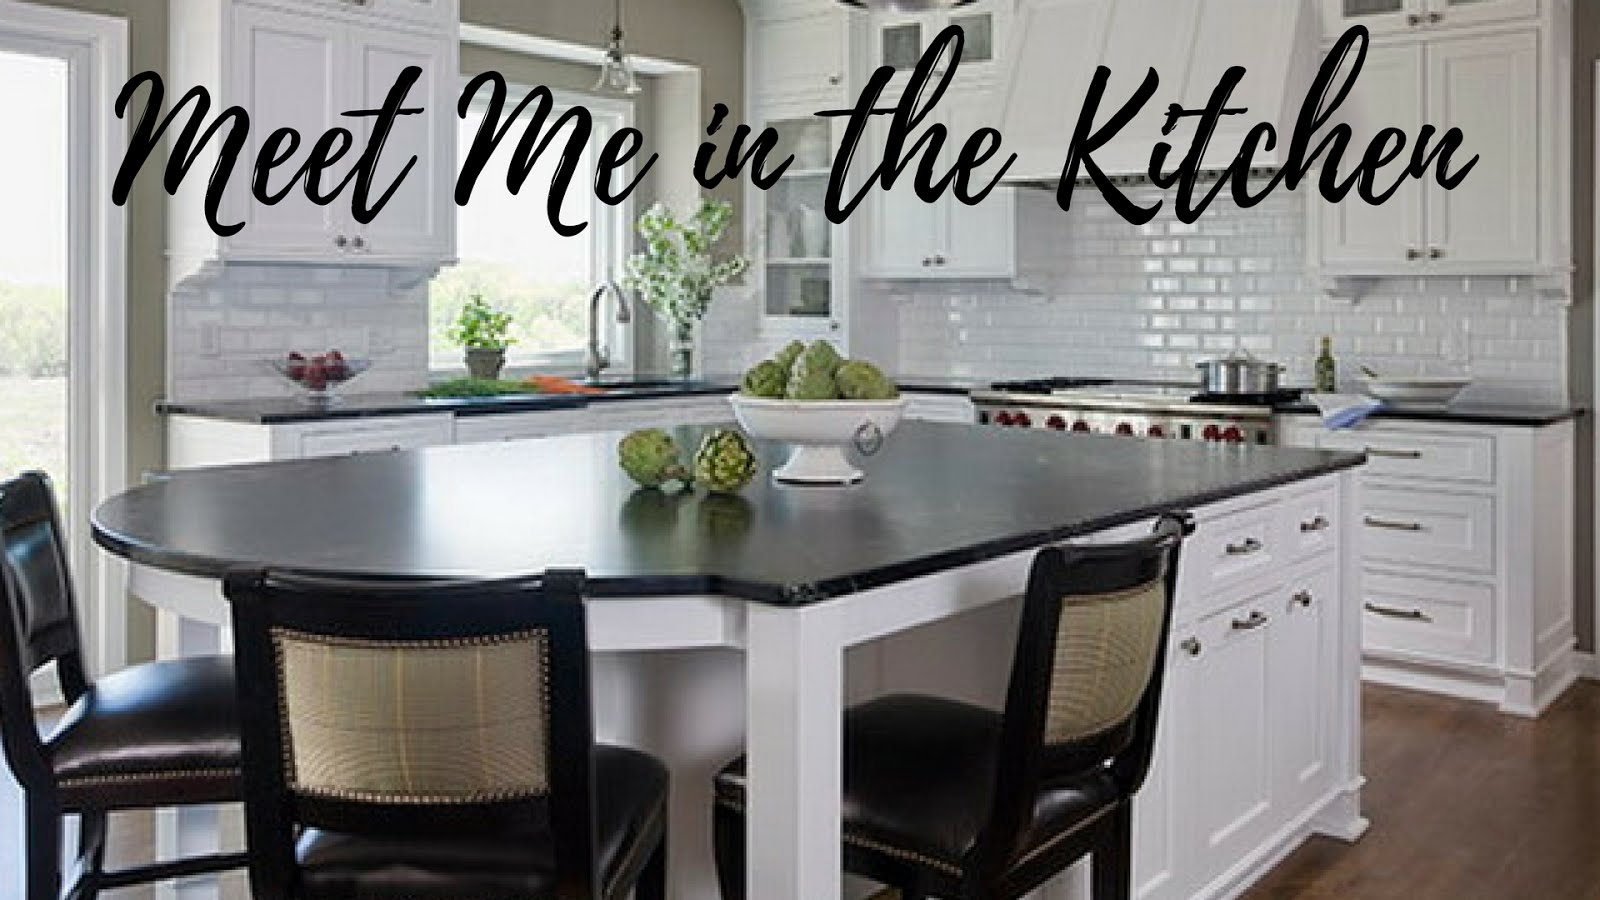 Meet Me in the Kitchen Book